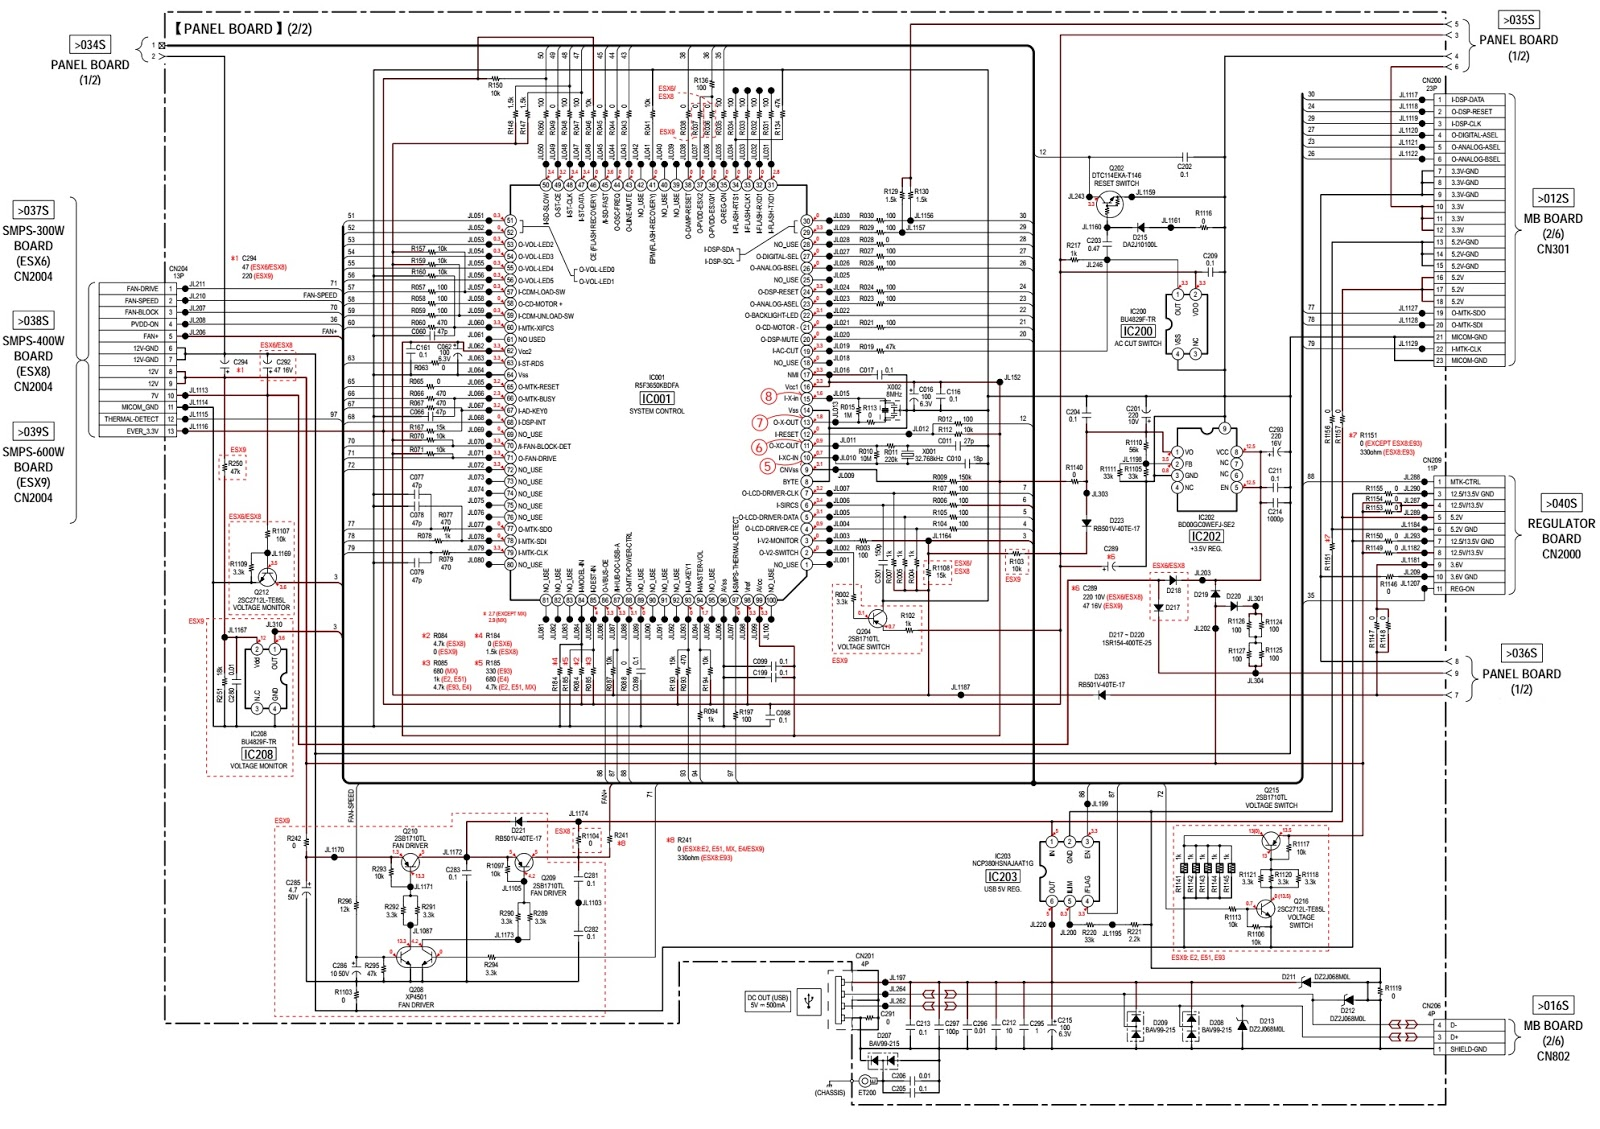 Sony Hcd Esx6 Esx8 Esx9 Compact Disc Receiver Smps And Front Tv Circuit Diagram Together With Led Schematic Panel